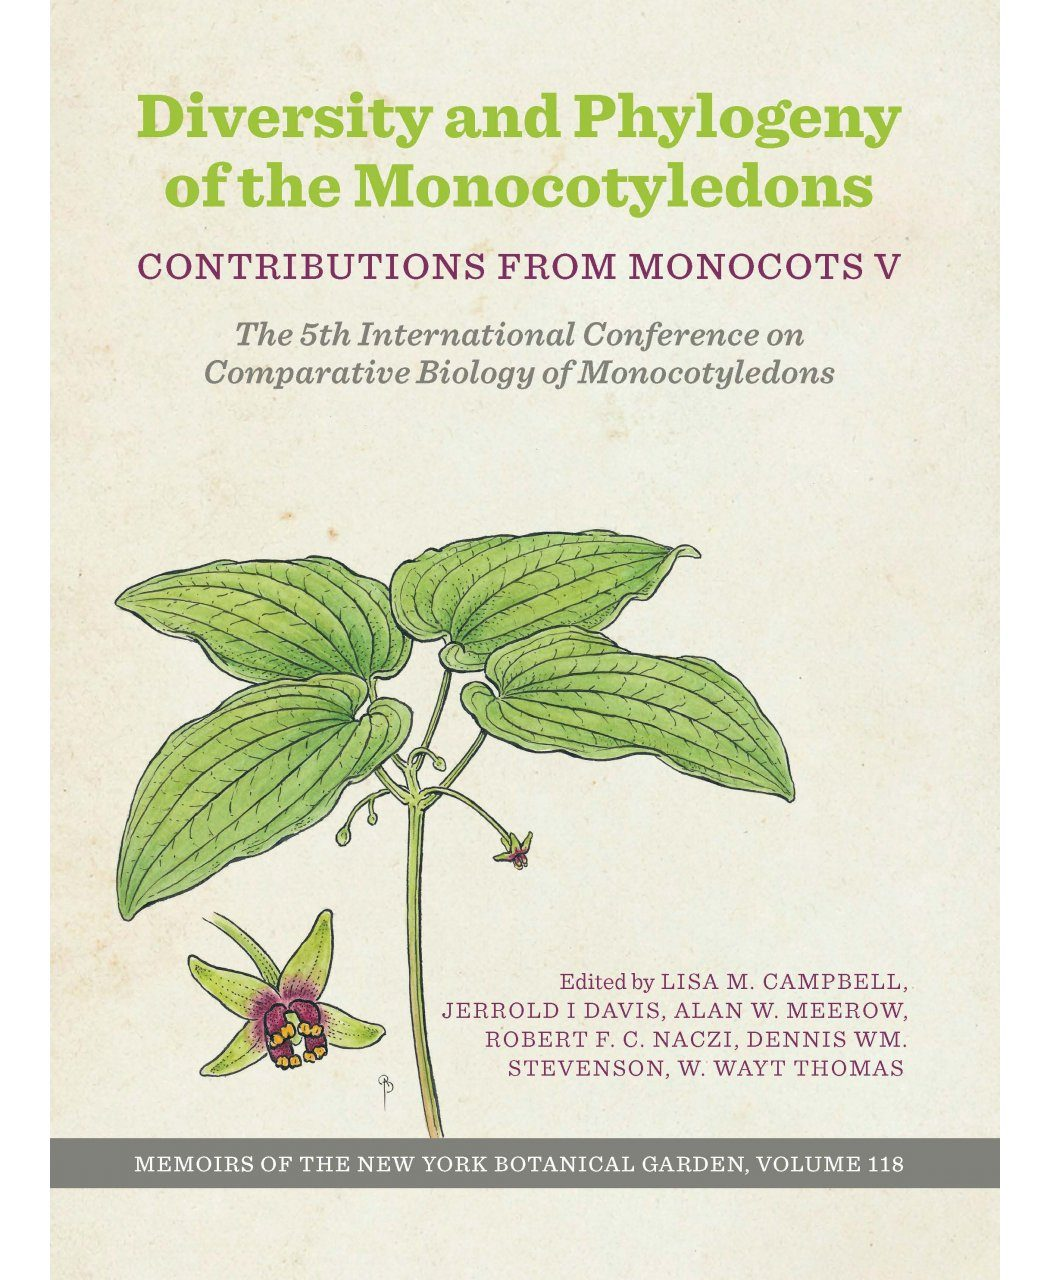 Diversity and Phylogeny of the Monocotyledons: Contributions from Monocots V